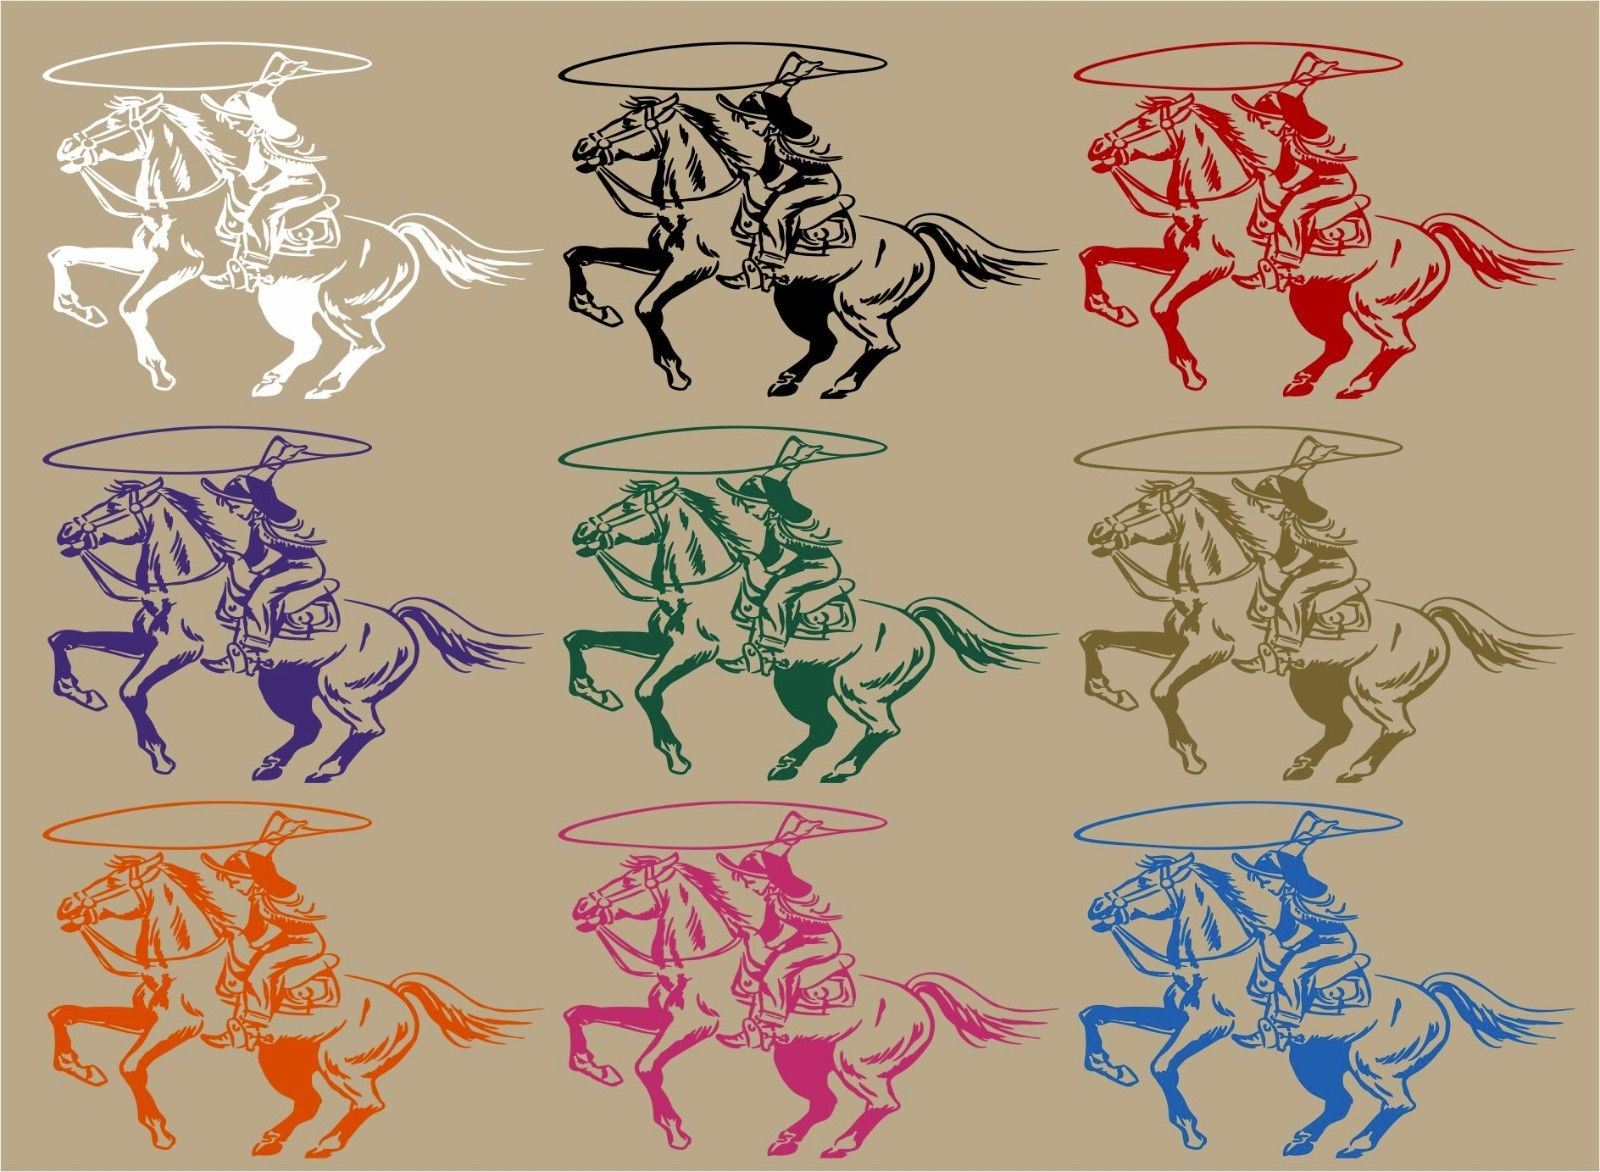 "Cowboy Cowgirl Horse Roping Rodeo Western Window Laptop Vinyl Decal Sticker - 12"" Long Edge"